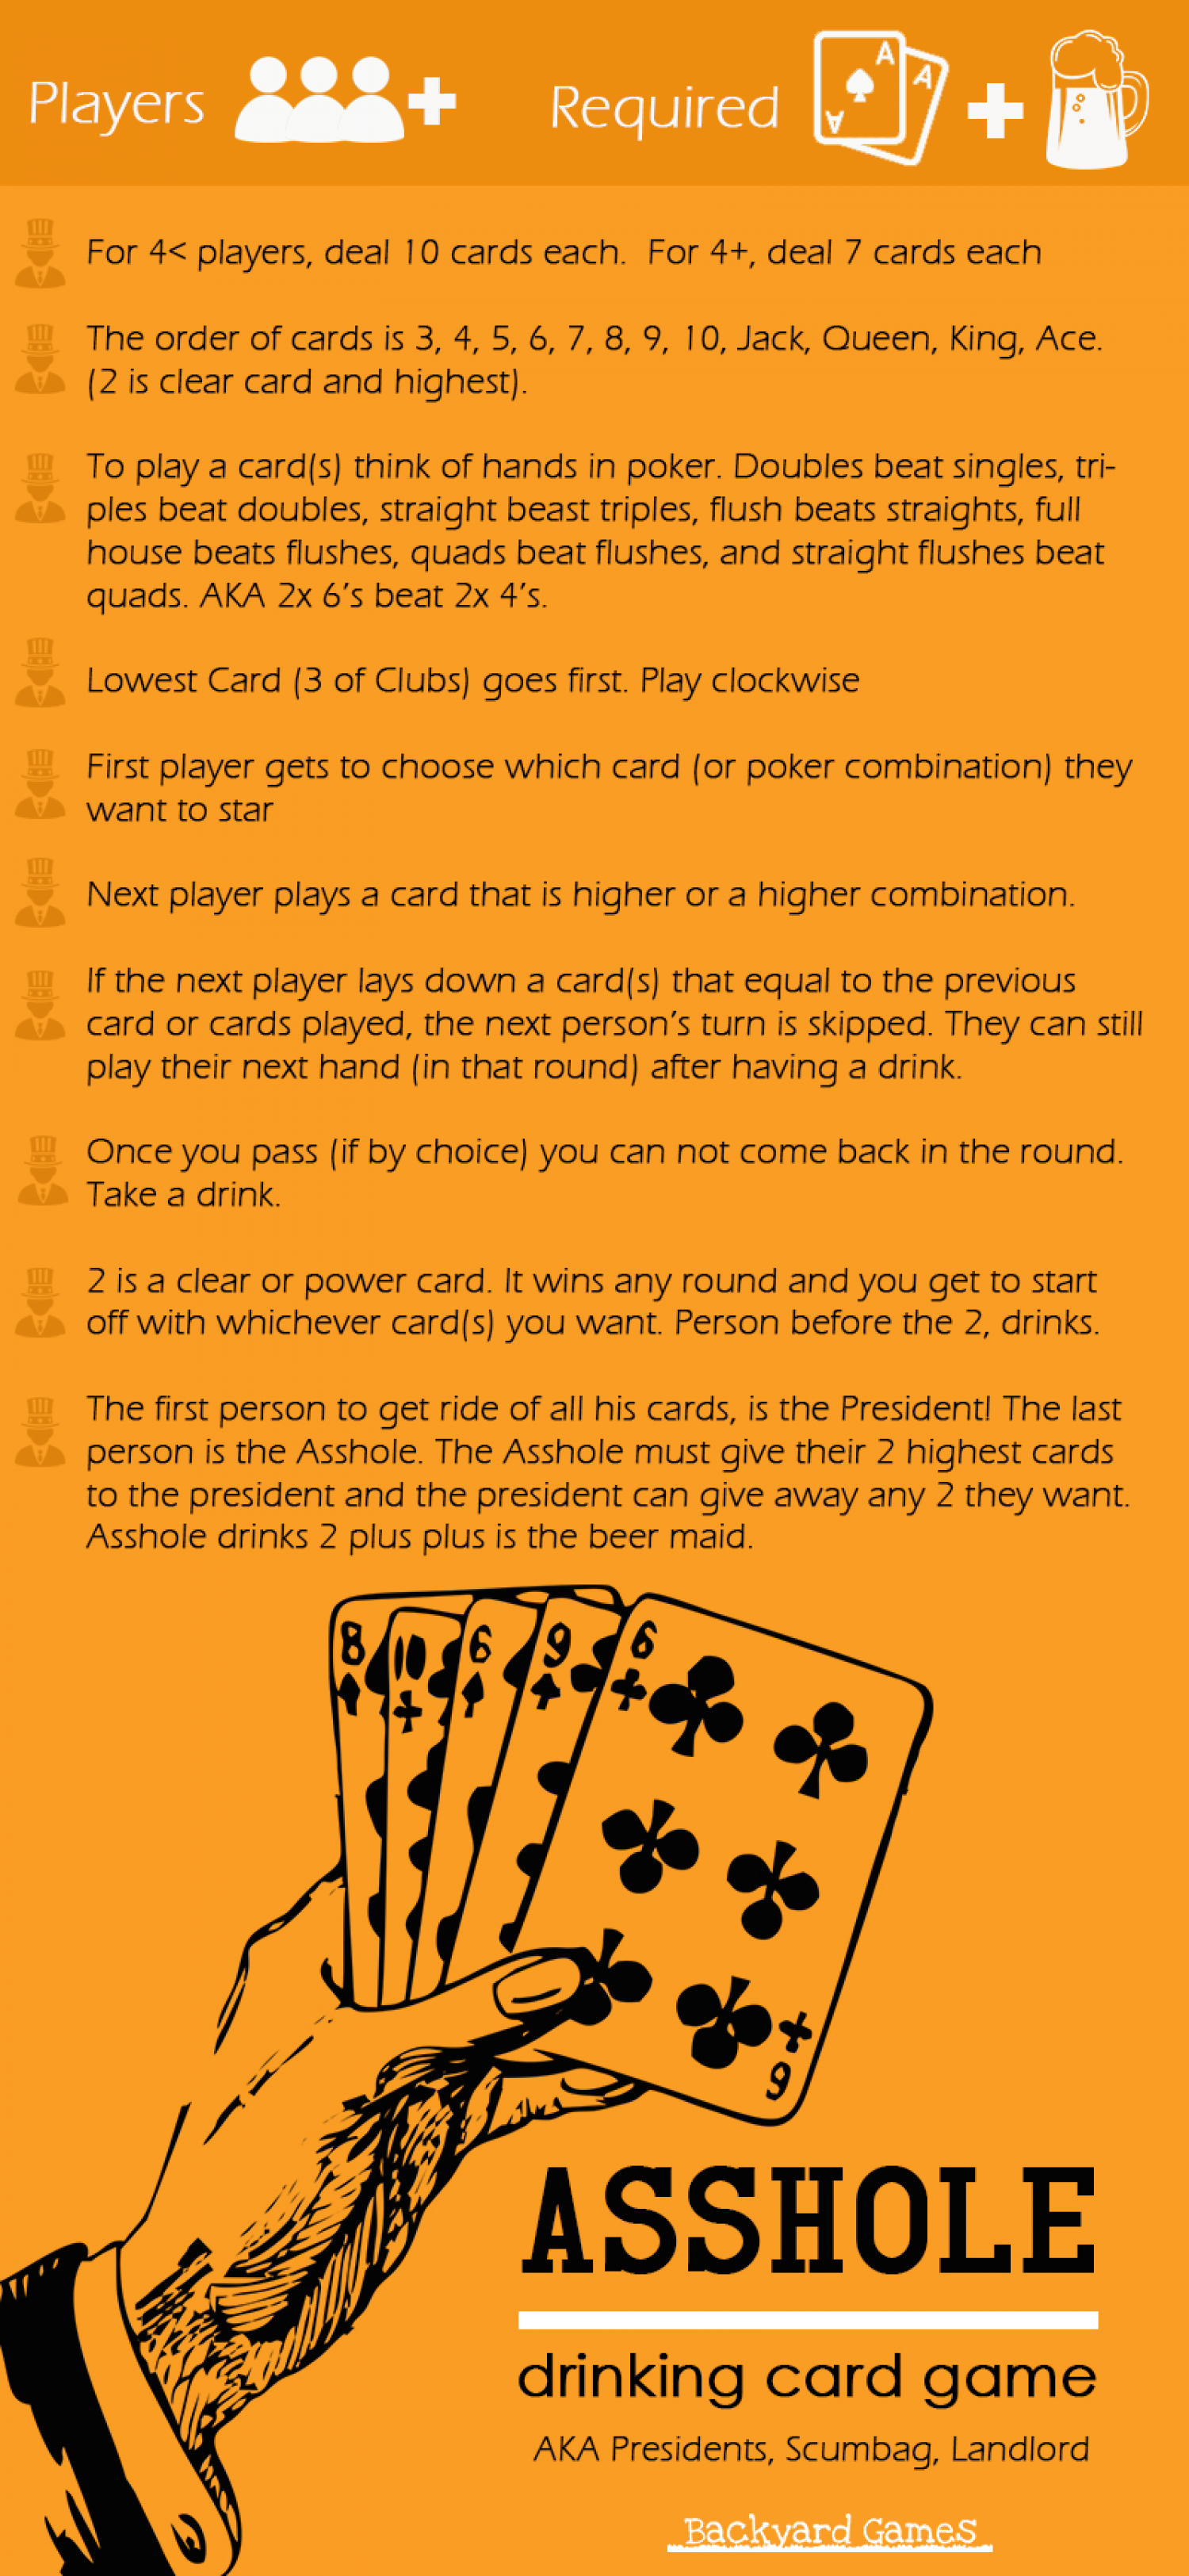 How to Play Asshole Drinking Card Game Infographic